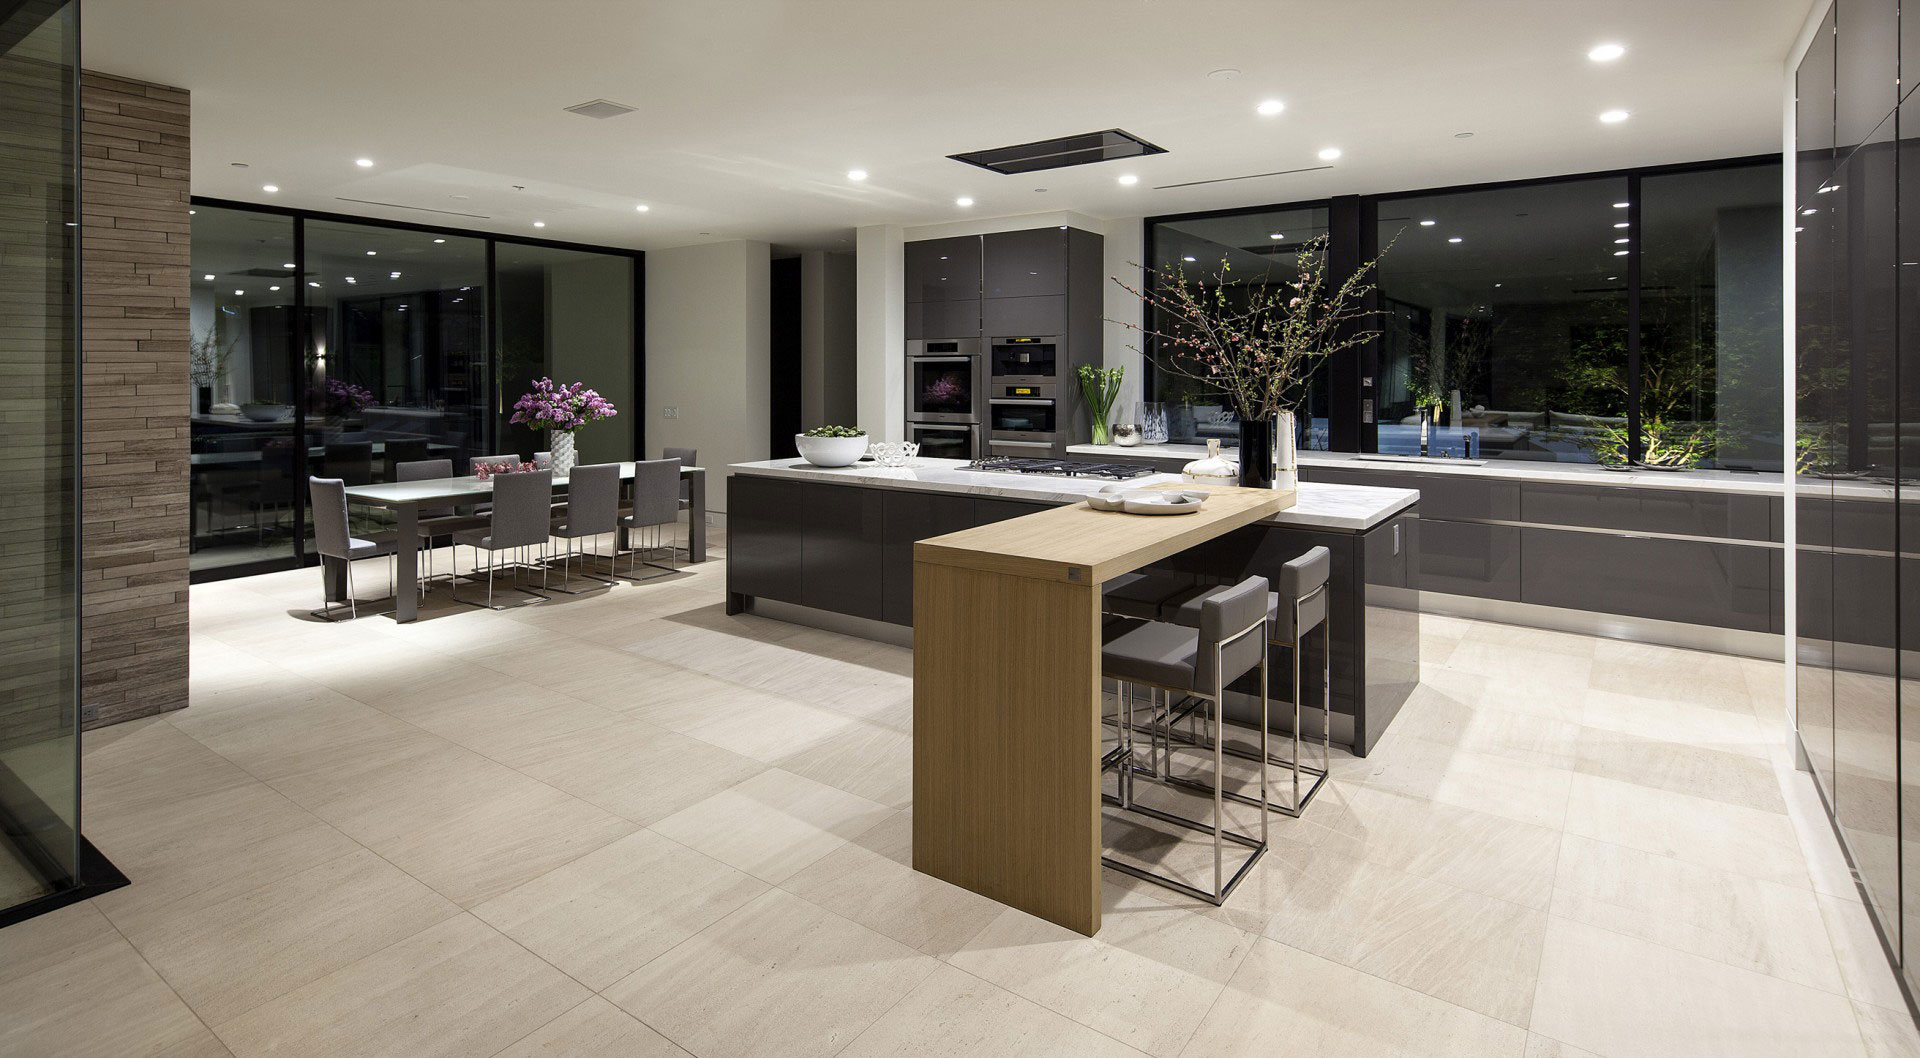 Waterfall Island In Kitchen San Vicente By Mcclean Design In California, Usa